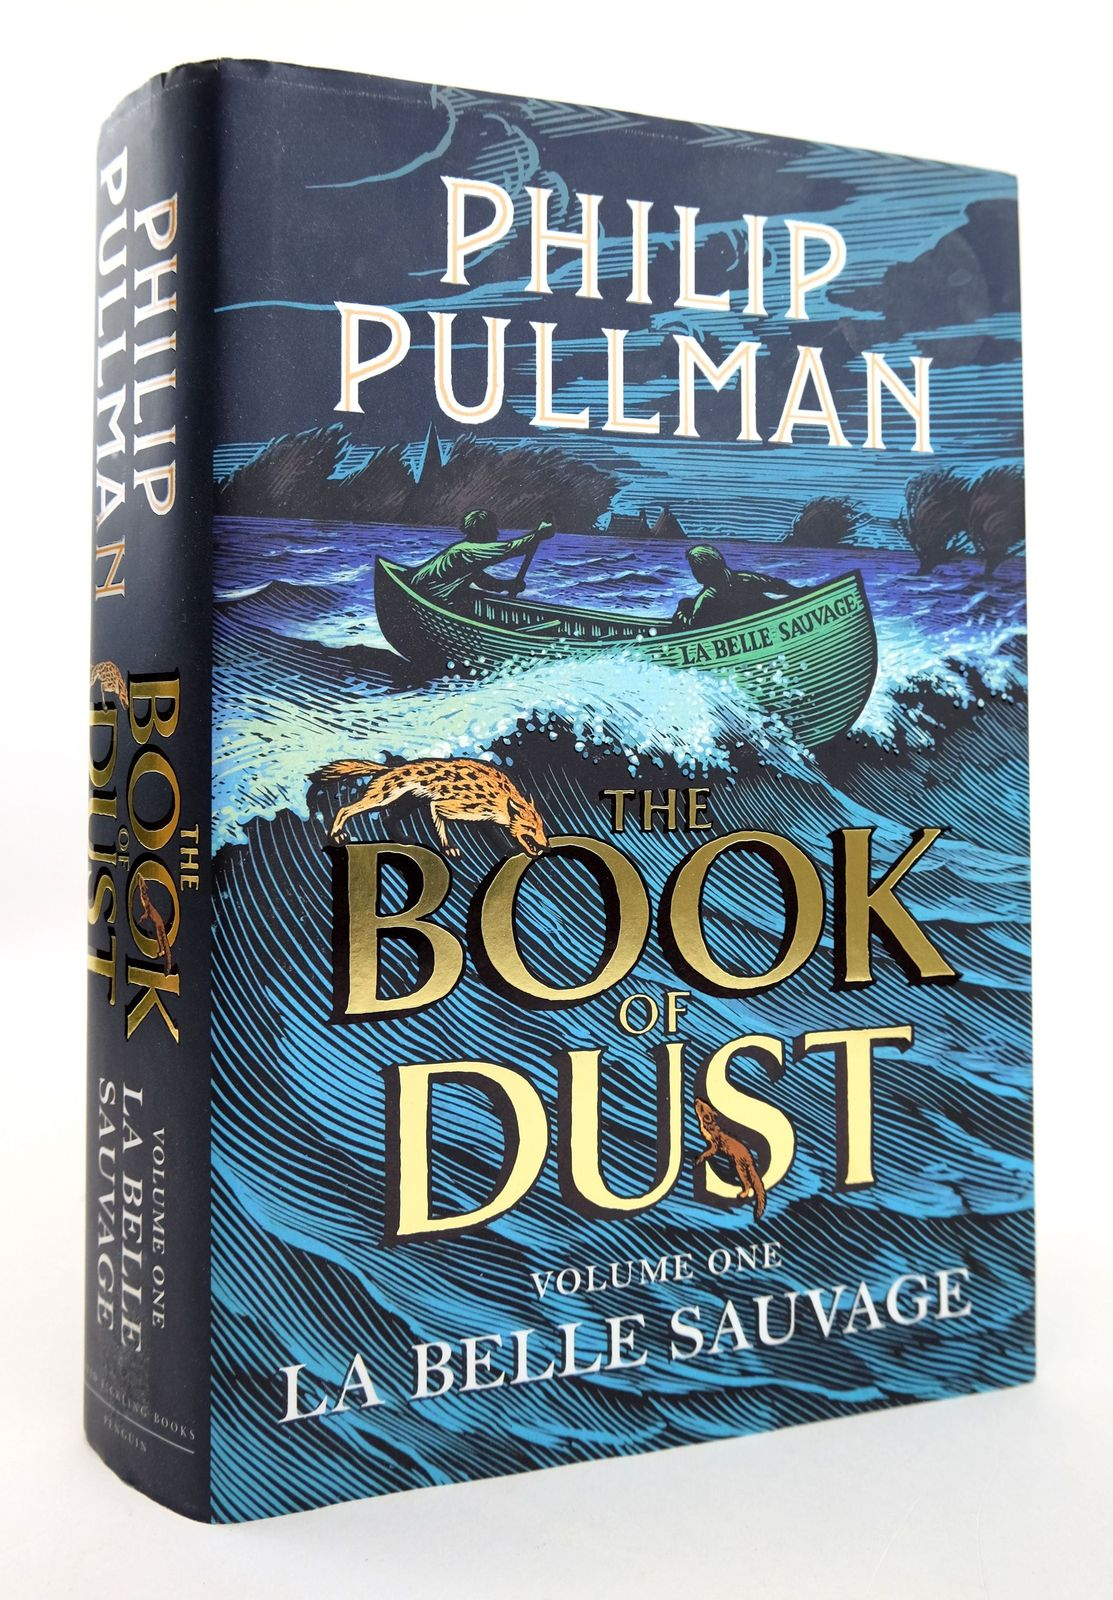 Photo of THE BOOK OF DUST VOLUME ONE: LA BELLE SAUVAGE written by Pullman, Philip illustrated by Wormell, Chris published by David Fickling Books (STOCK CODE: 1818913)  for sale by Stella & Rose's Books